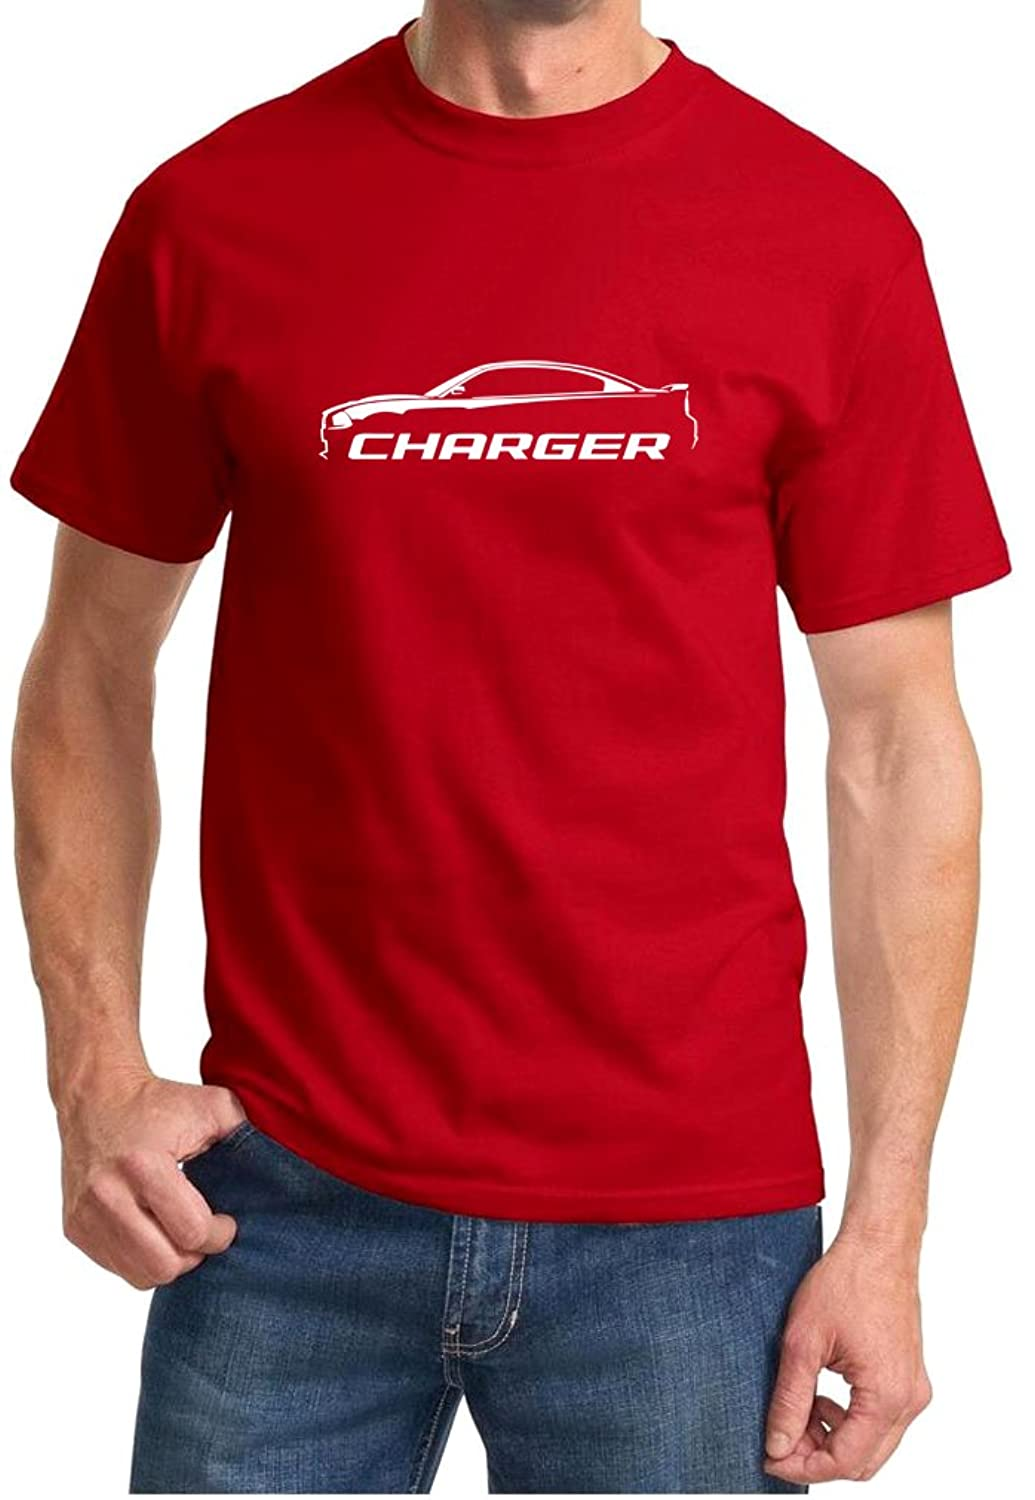 2010-14 Dodge Charger Classic Outline Design Tshirt small red